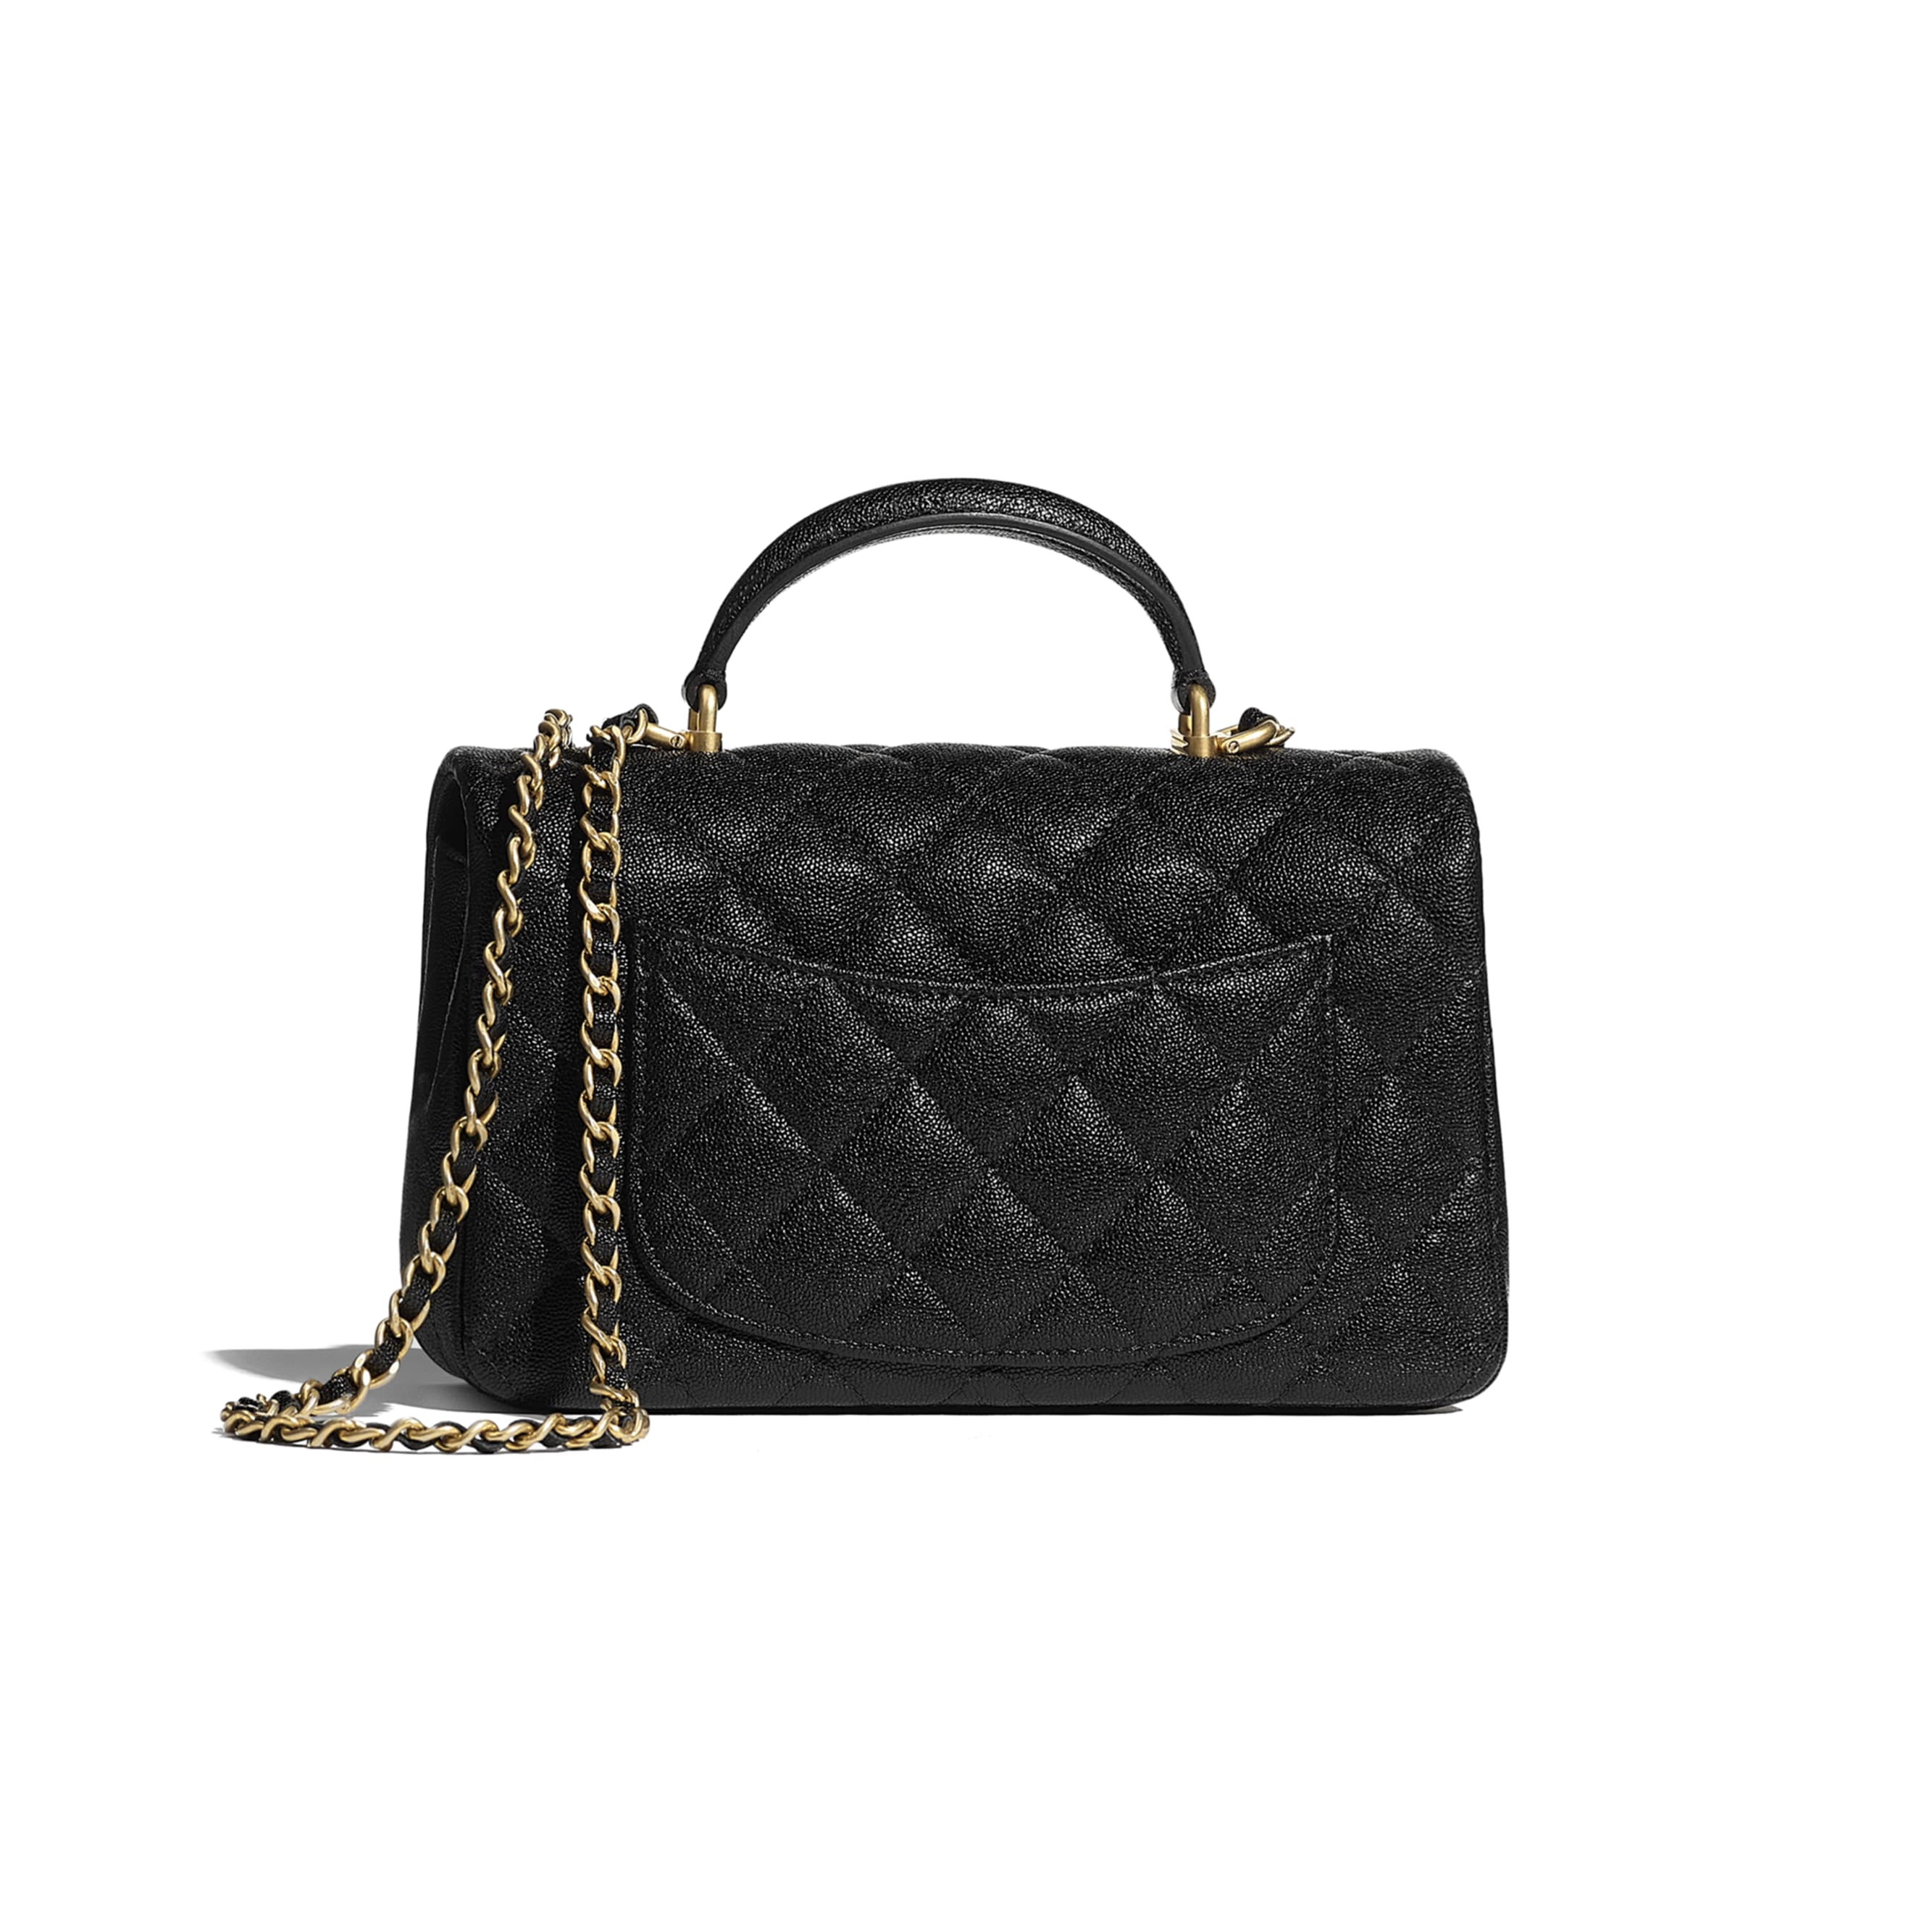 Mini Flap Bag with Top Handle - Black - Grained Calfskin & Gold-Tone Metal - CHANEL - Alternative view - see standard sized version